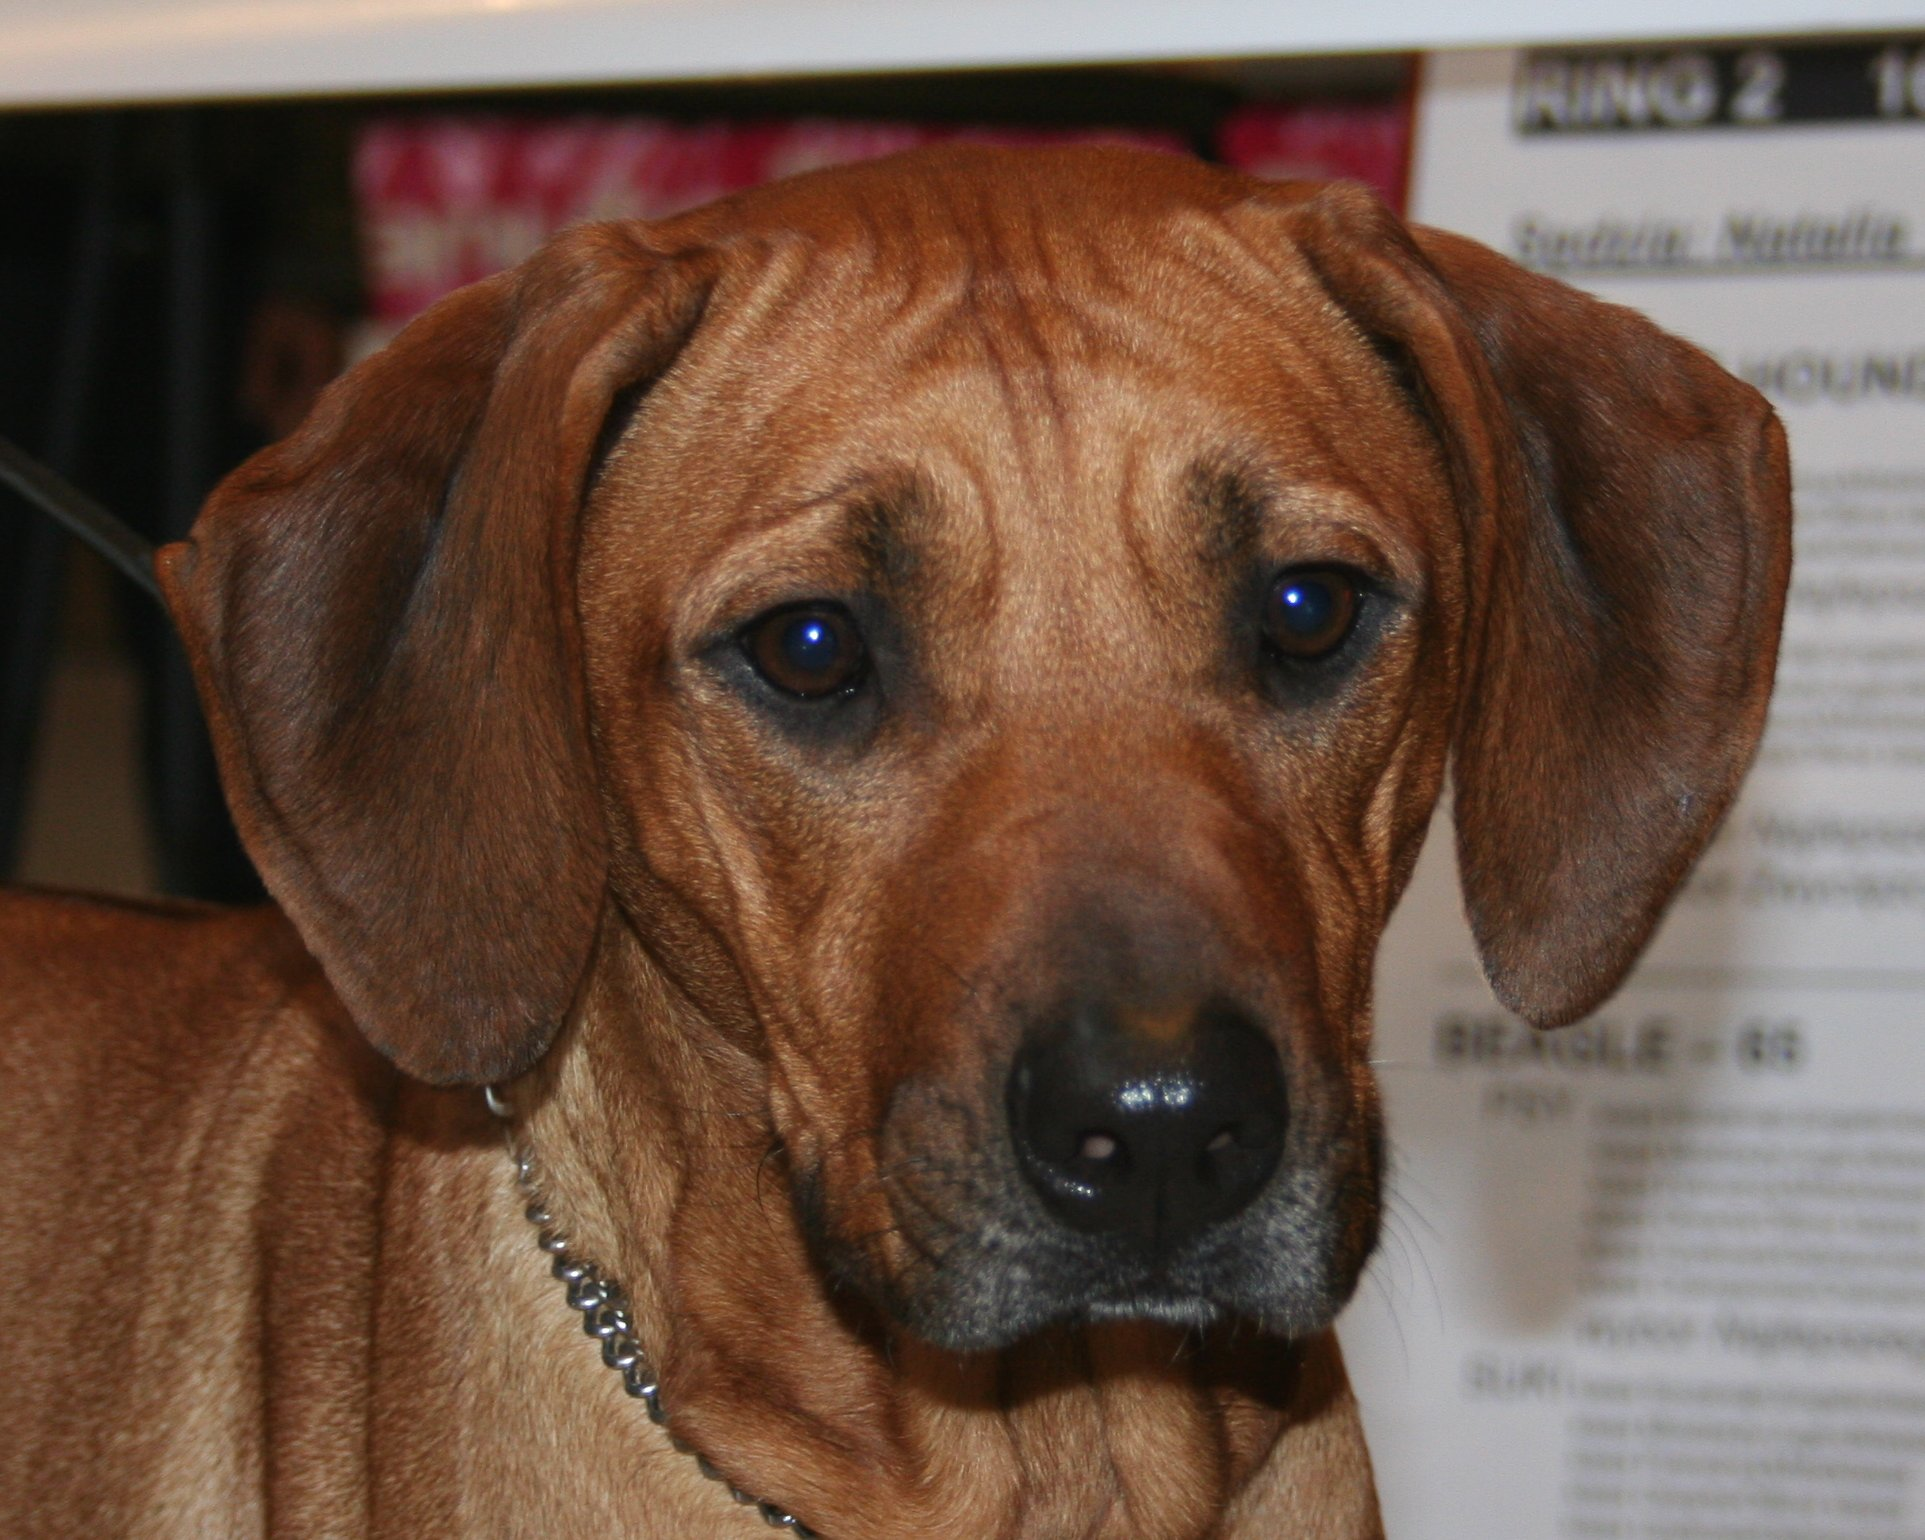 Rhodesian Ridgeback dog face wallpaper